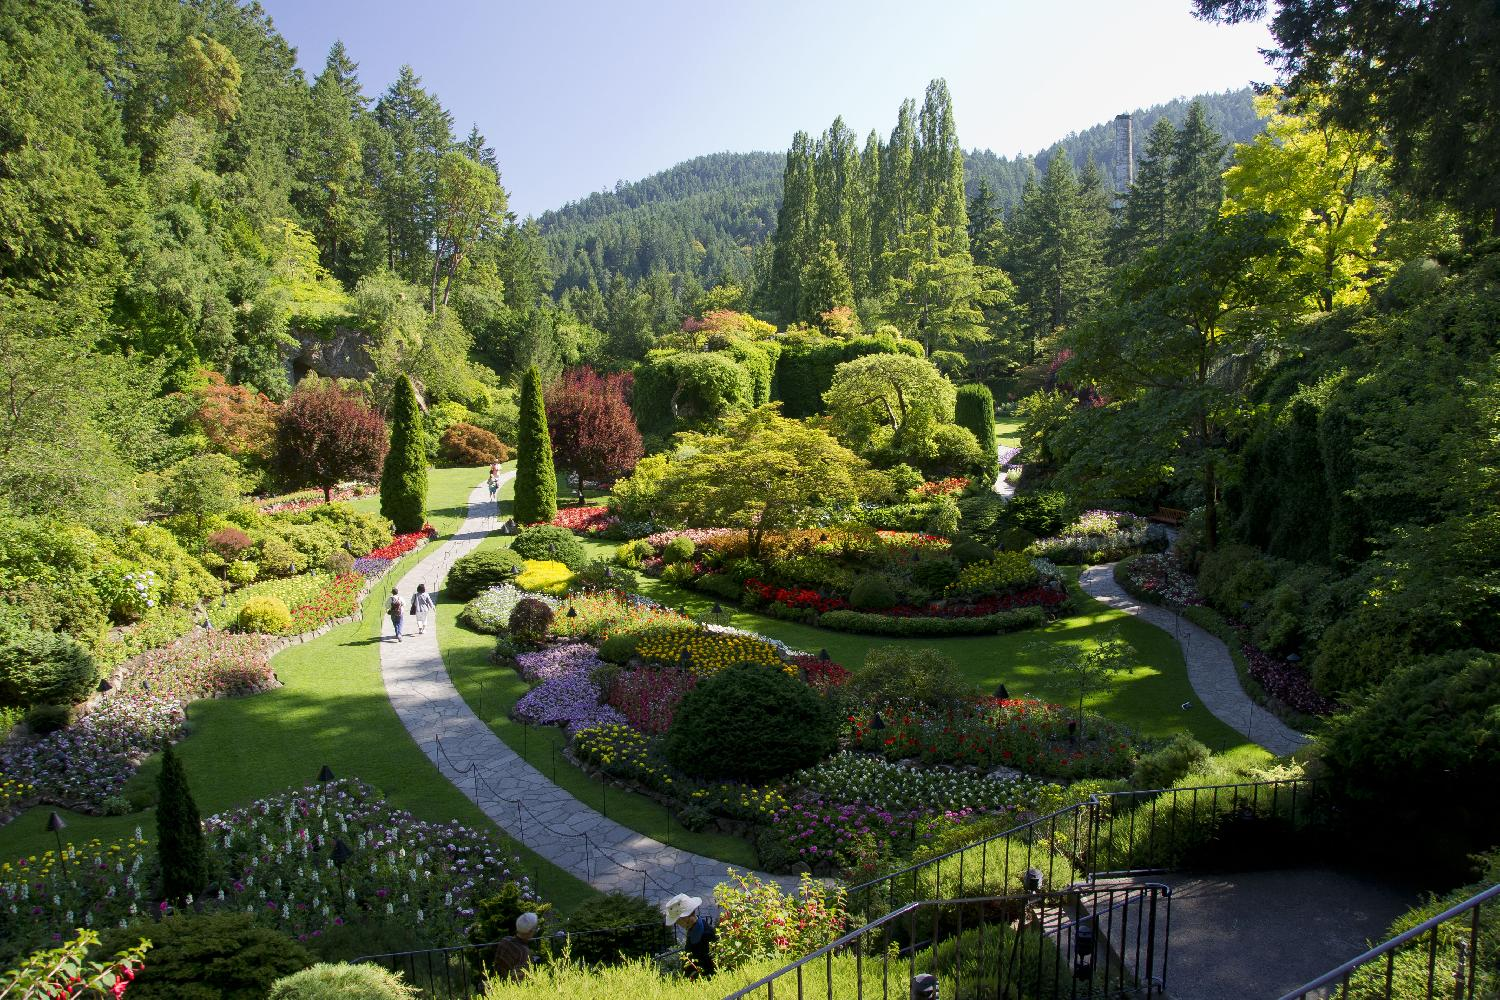 View of the Sunken Gardens at Butchart Gardens in Brentwood Bay near Victoria British Columbia.